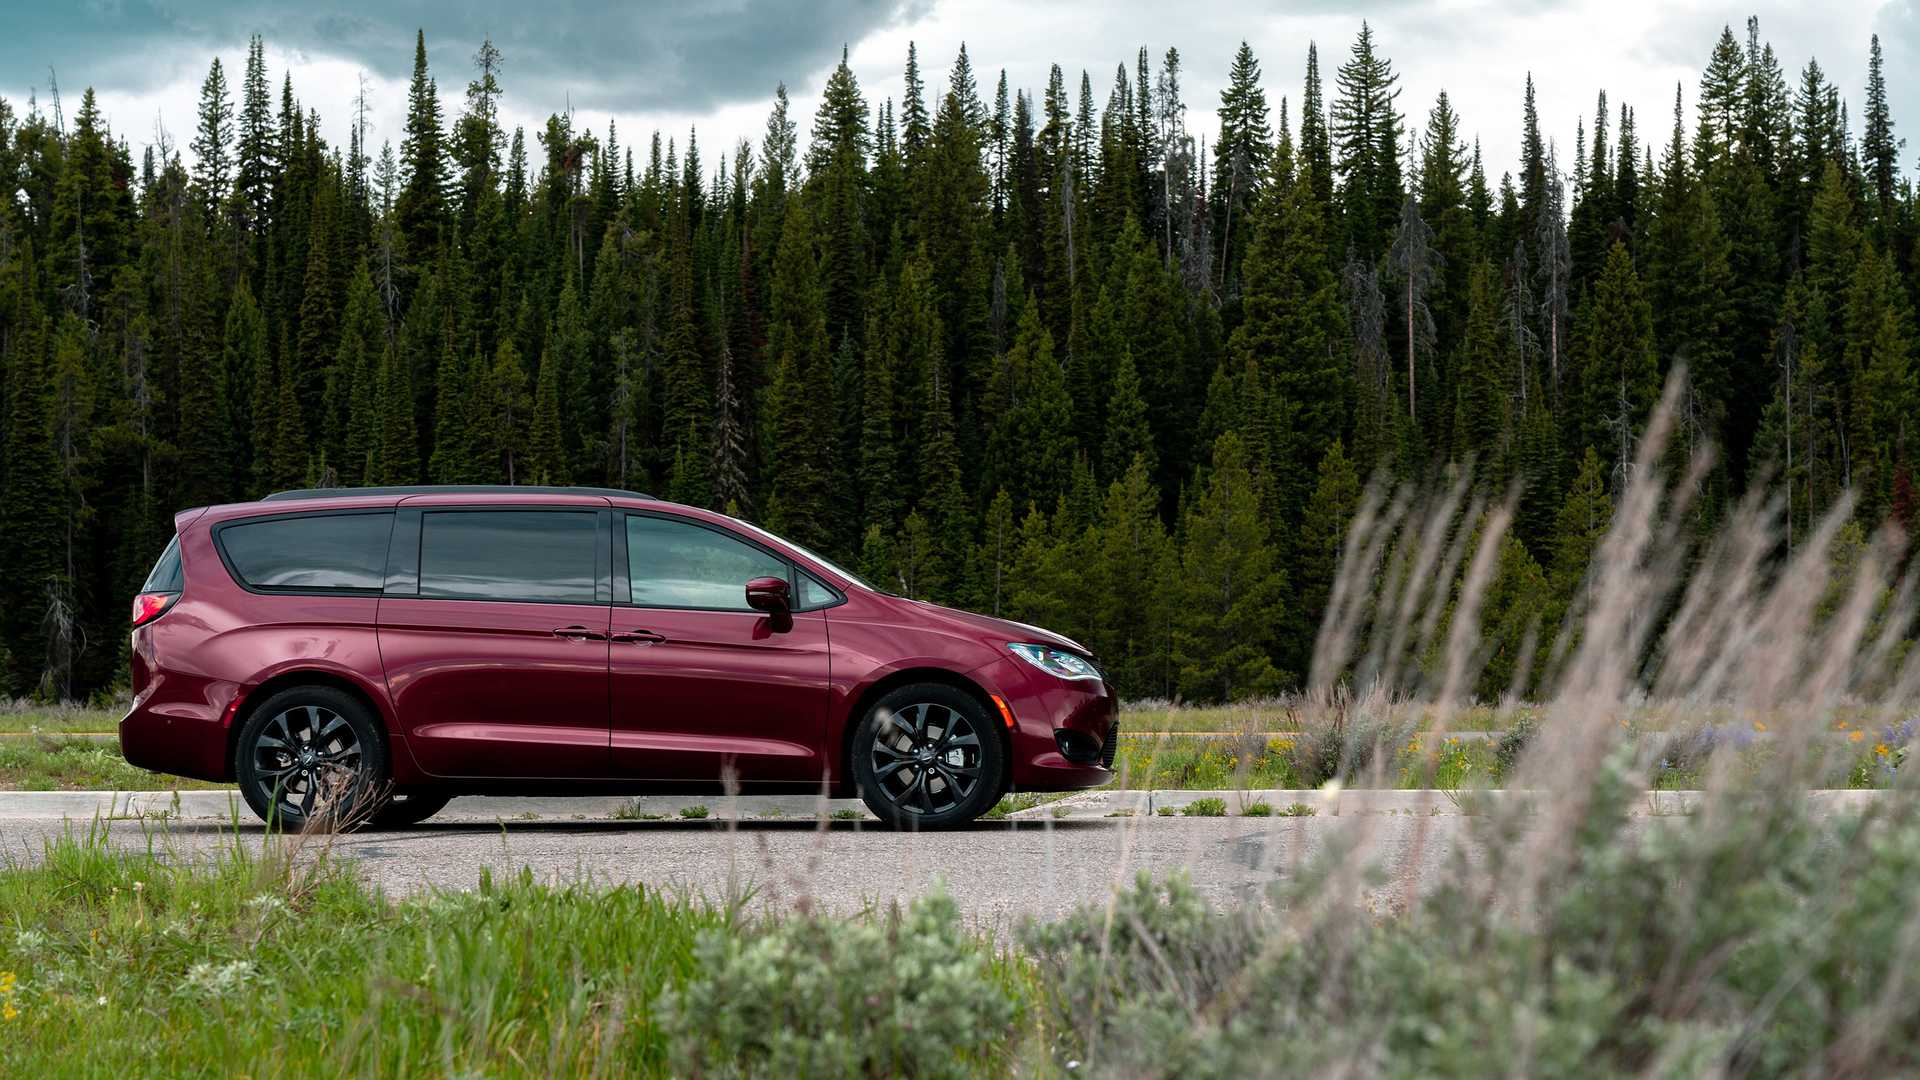 2020_Chrysler_Pacifica_Red_S_Edition_0023